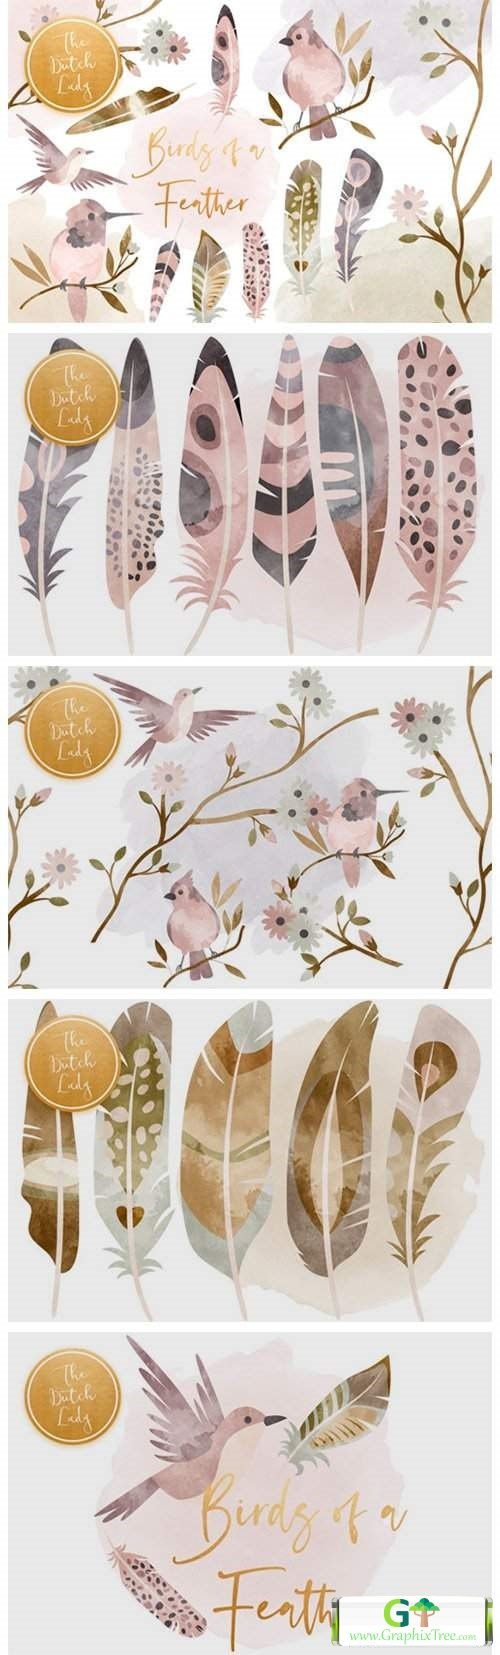 Birds & Feathers Clipart Set [Stock Image] [illustrations]